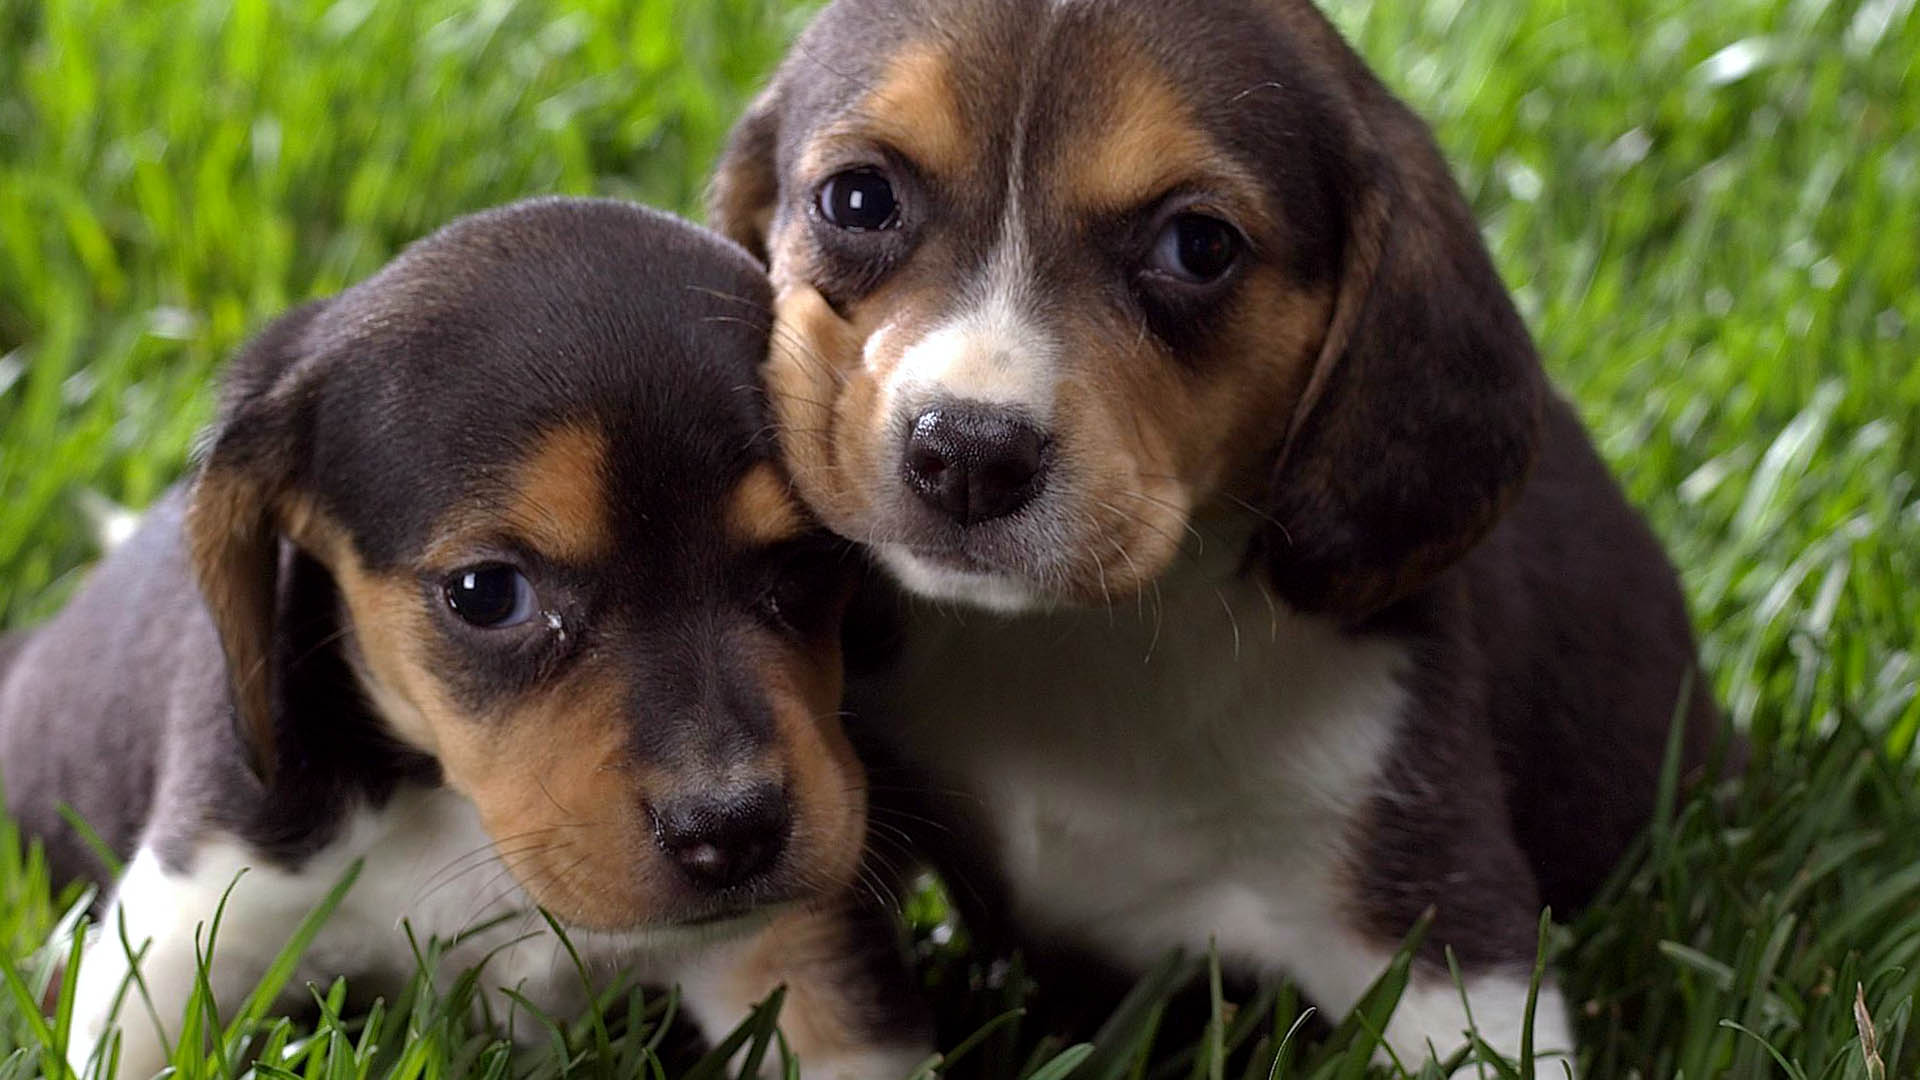 Cool Funny Puppies Dog Awesome Wallpapers HD 1920x1080